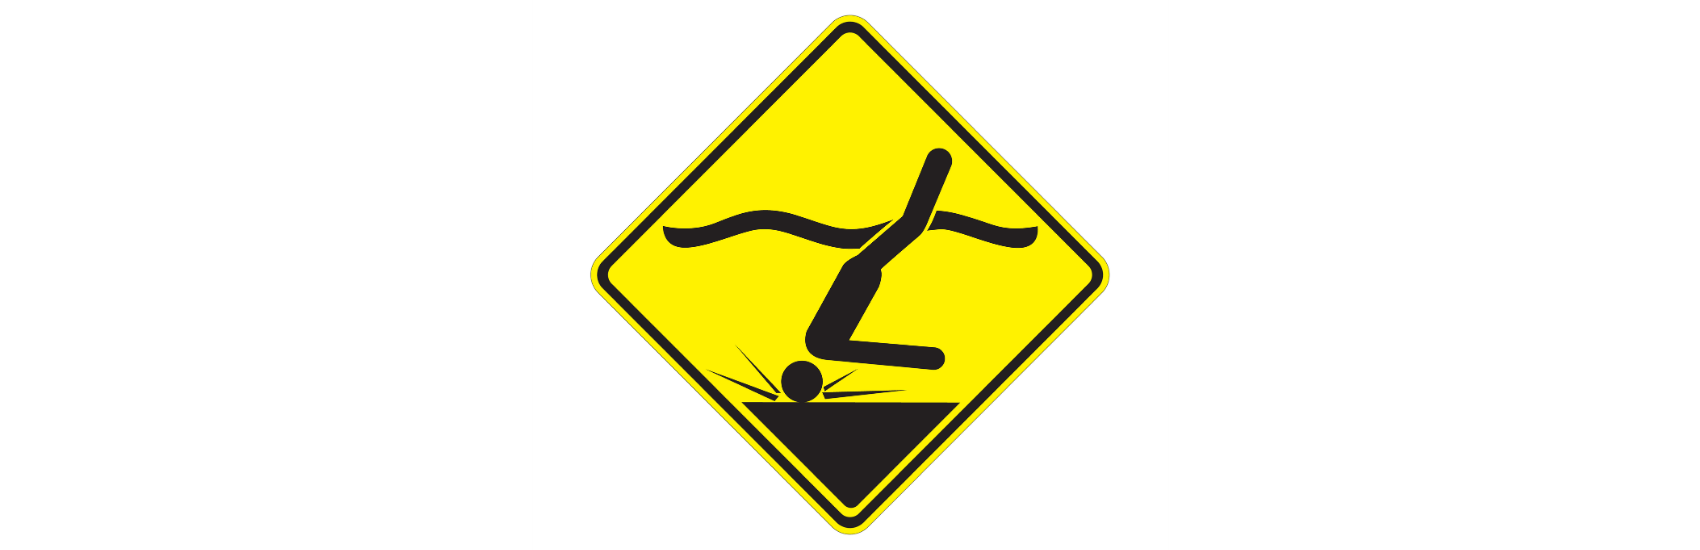 Shallow Water (Diving)